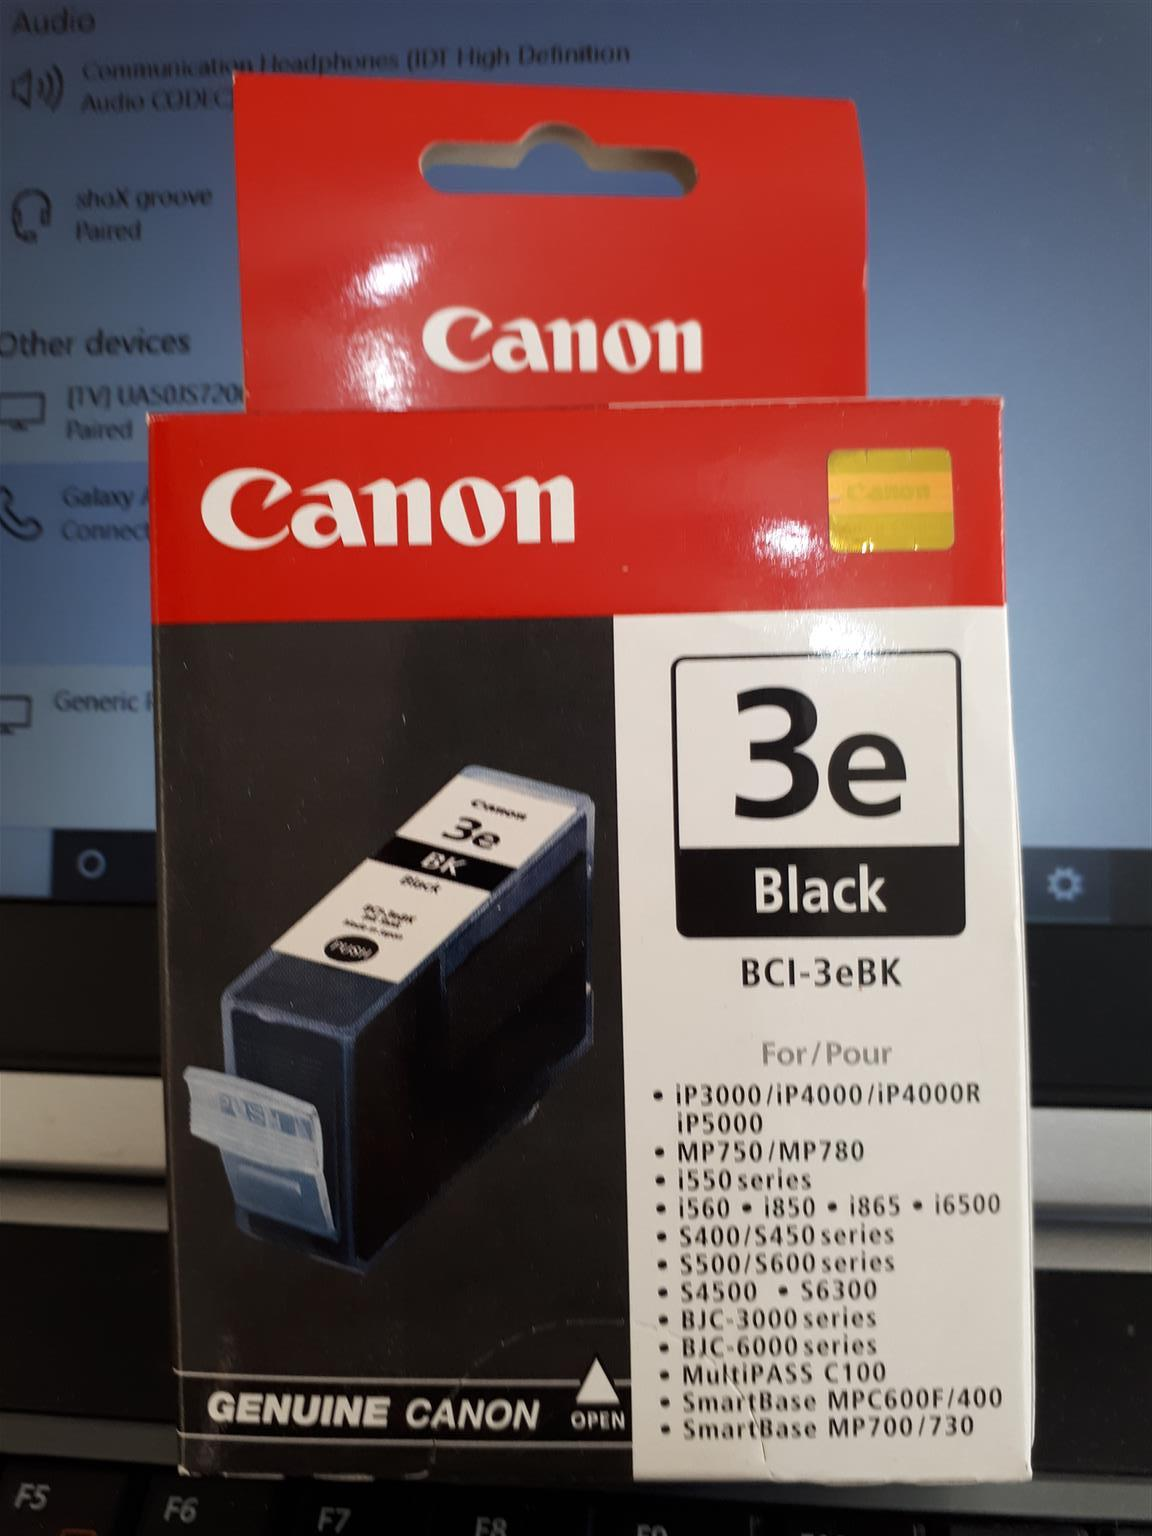 Canon Ink Tanks iP3000 to iP5000